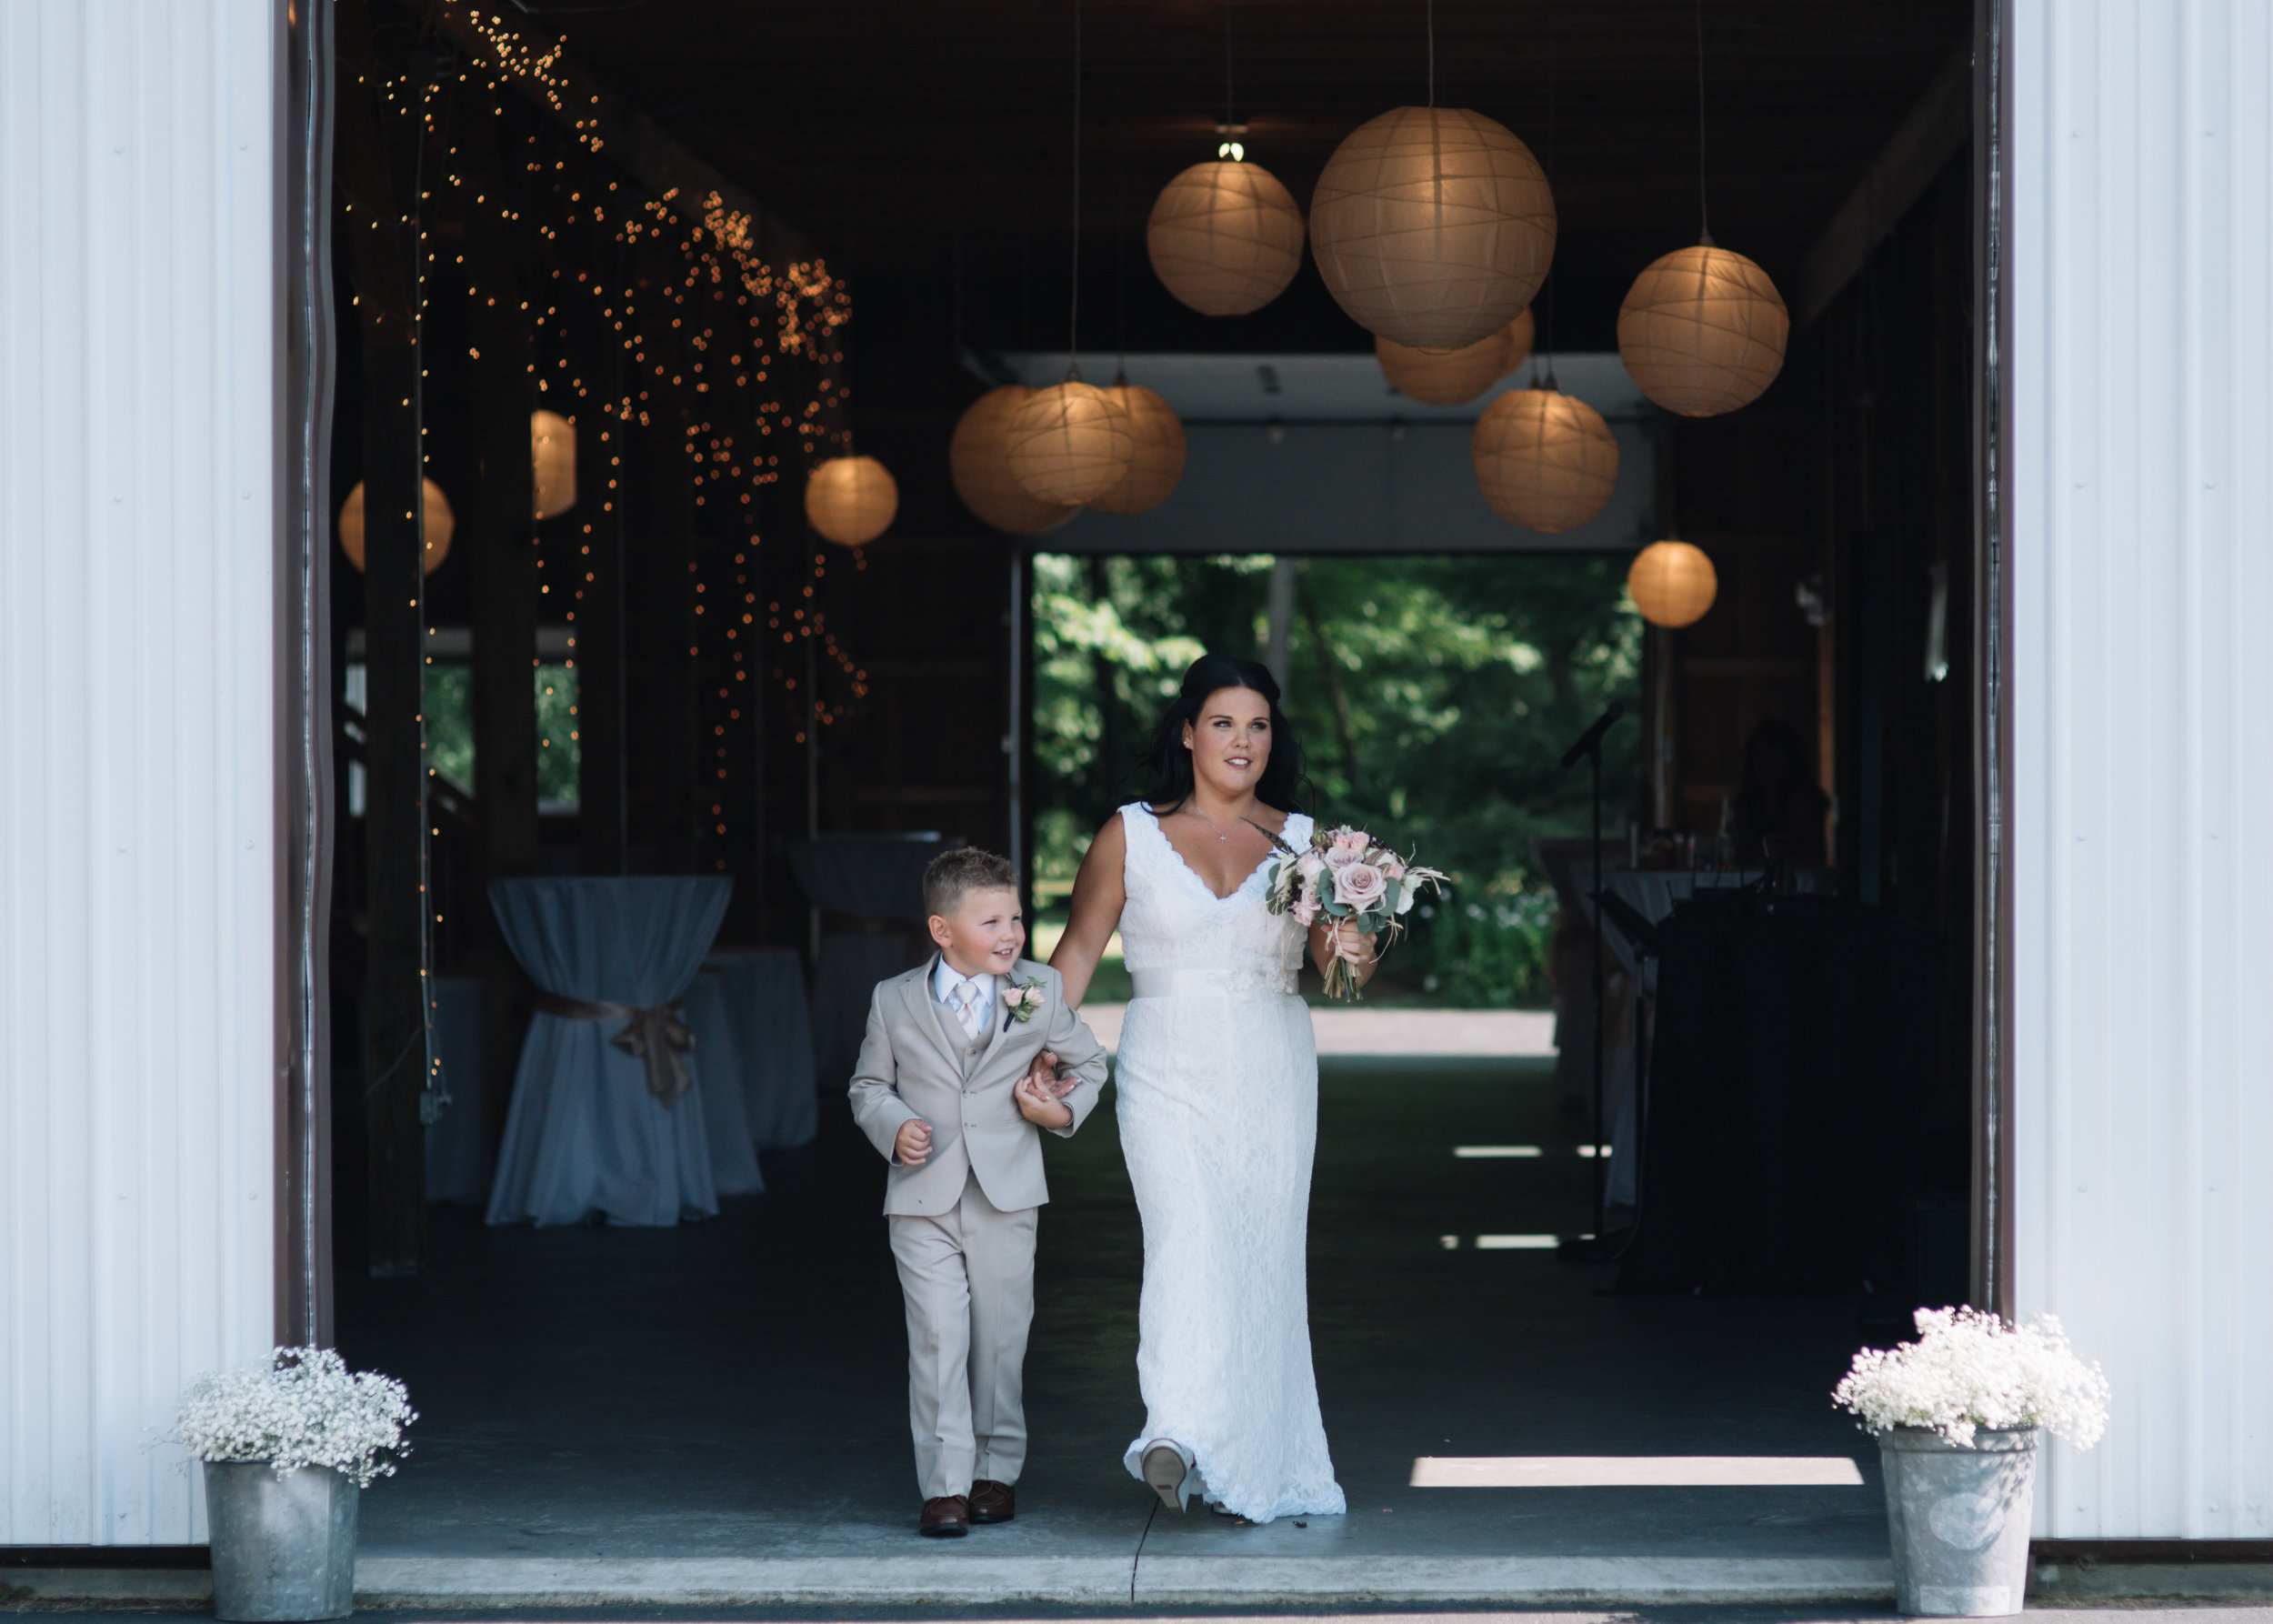 Michelle&Chip-184.jpg